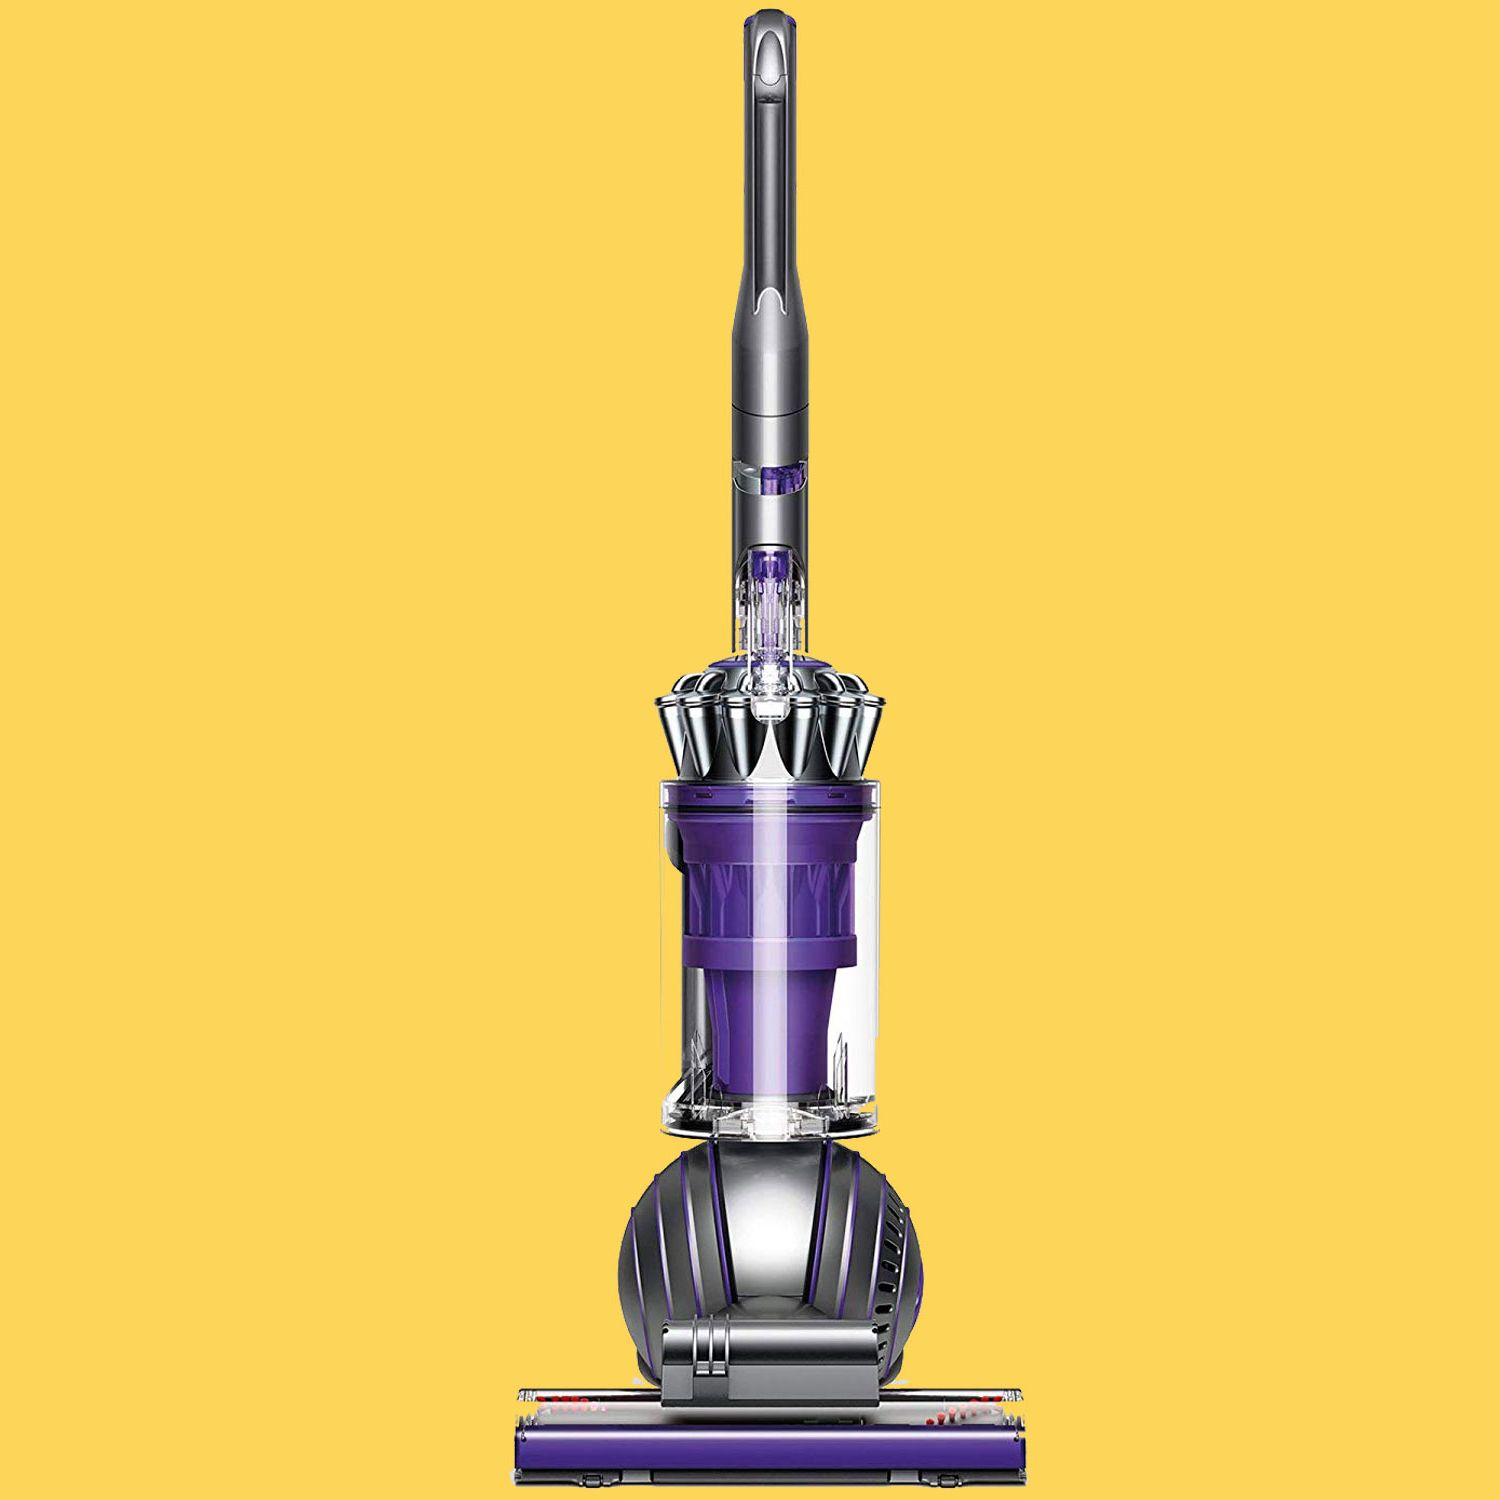 This Allergy-Fighting HEPA Vacuum Is 25% off on Amazon for Today Only